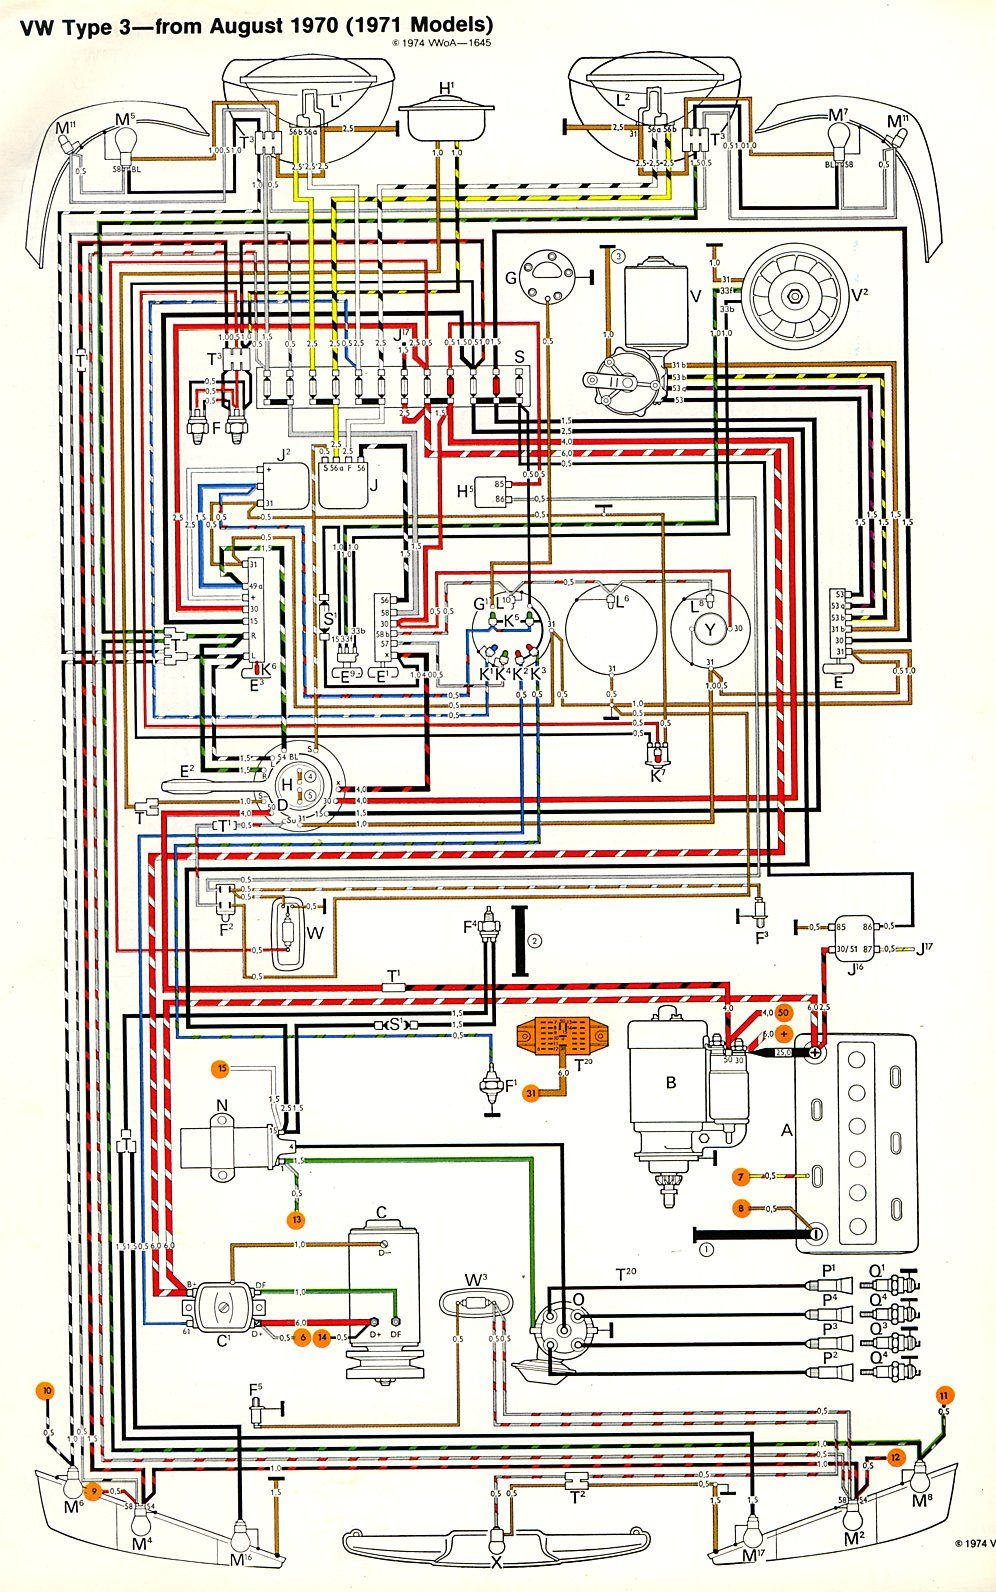 1971 type iii wiring diagram | electrical diagram, vw beetles, vw bug  pinterest